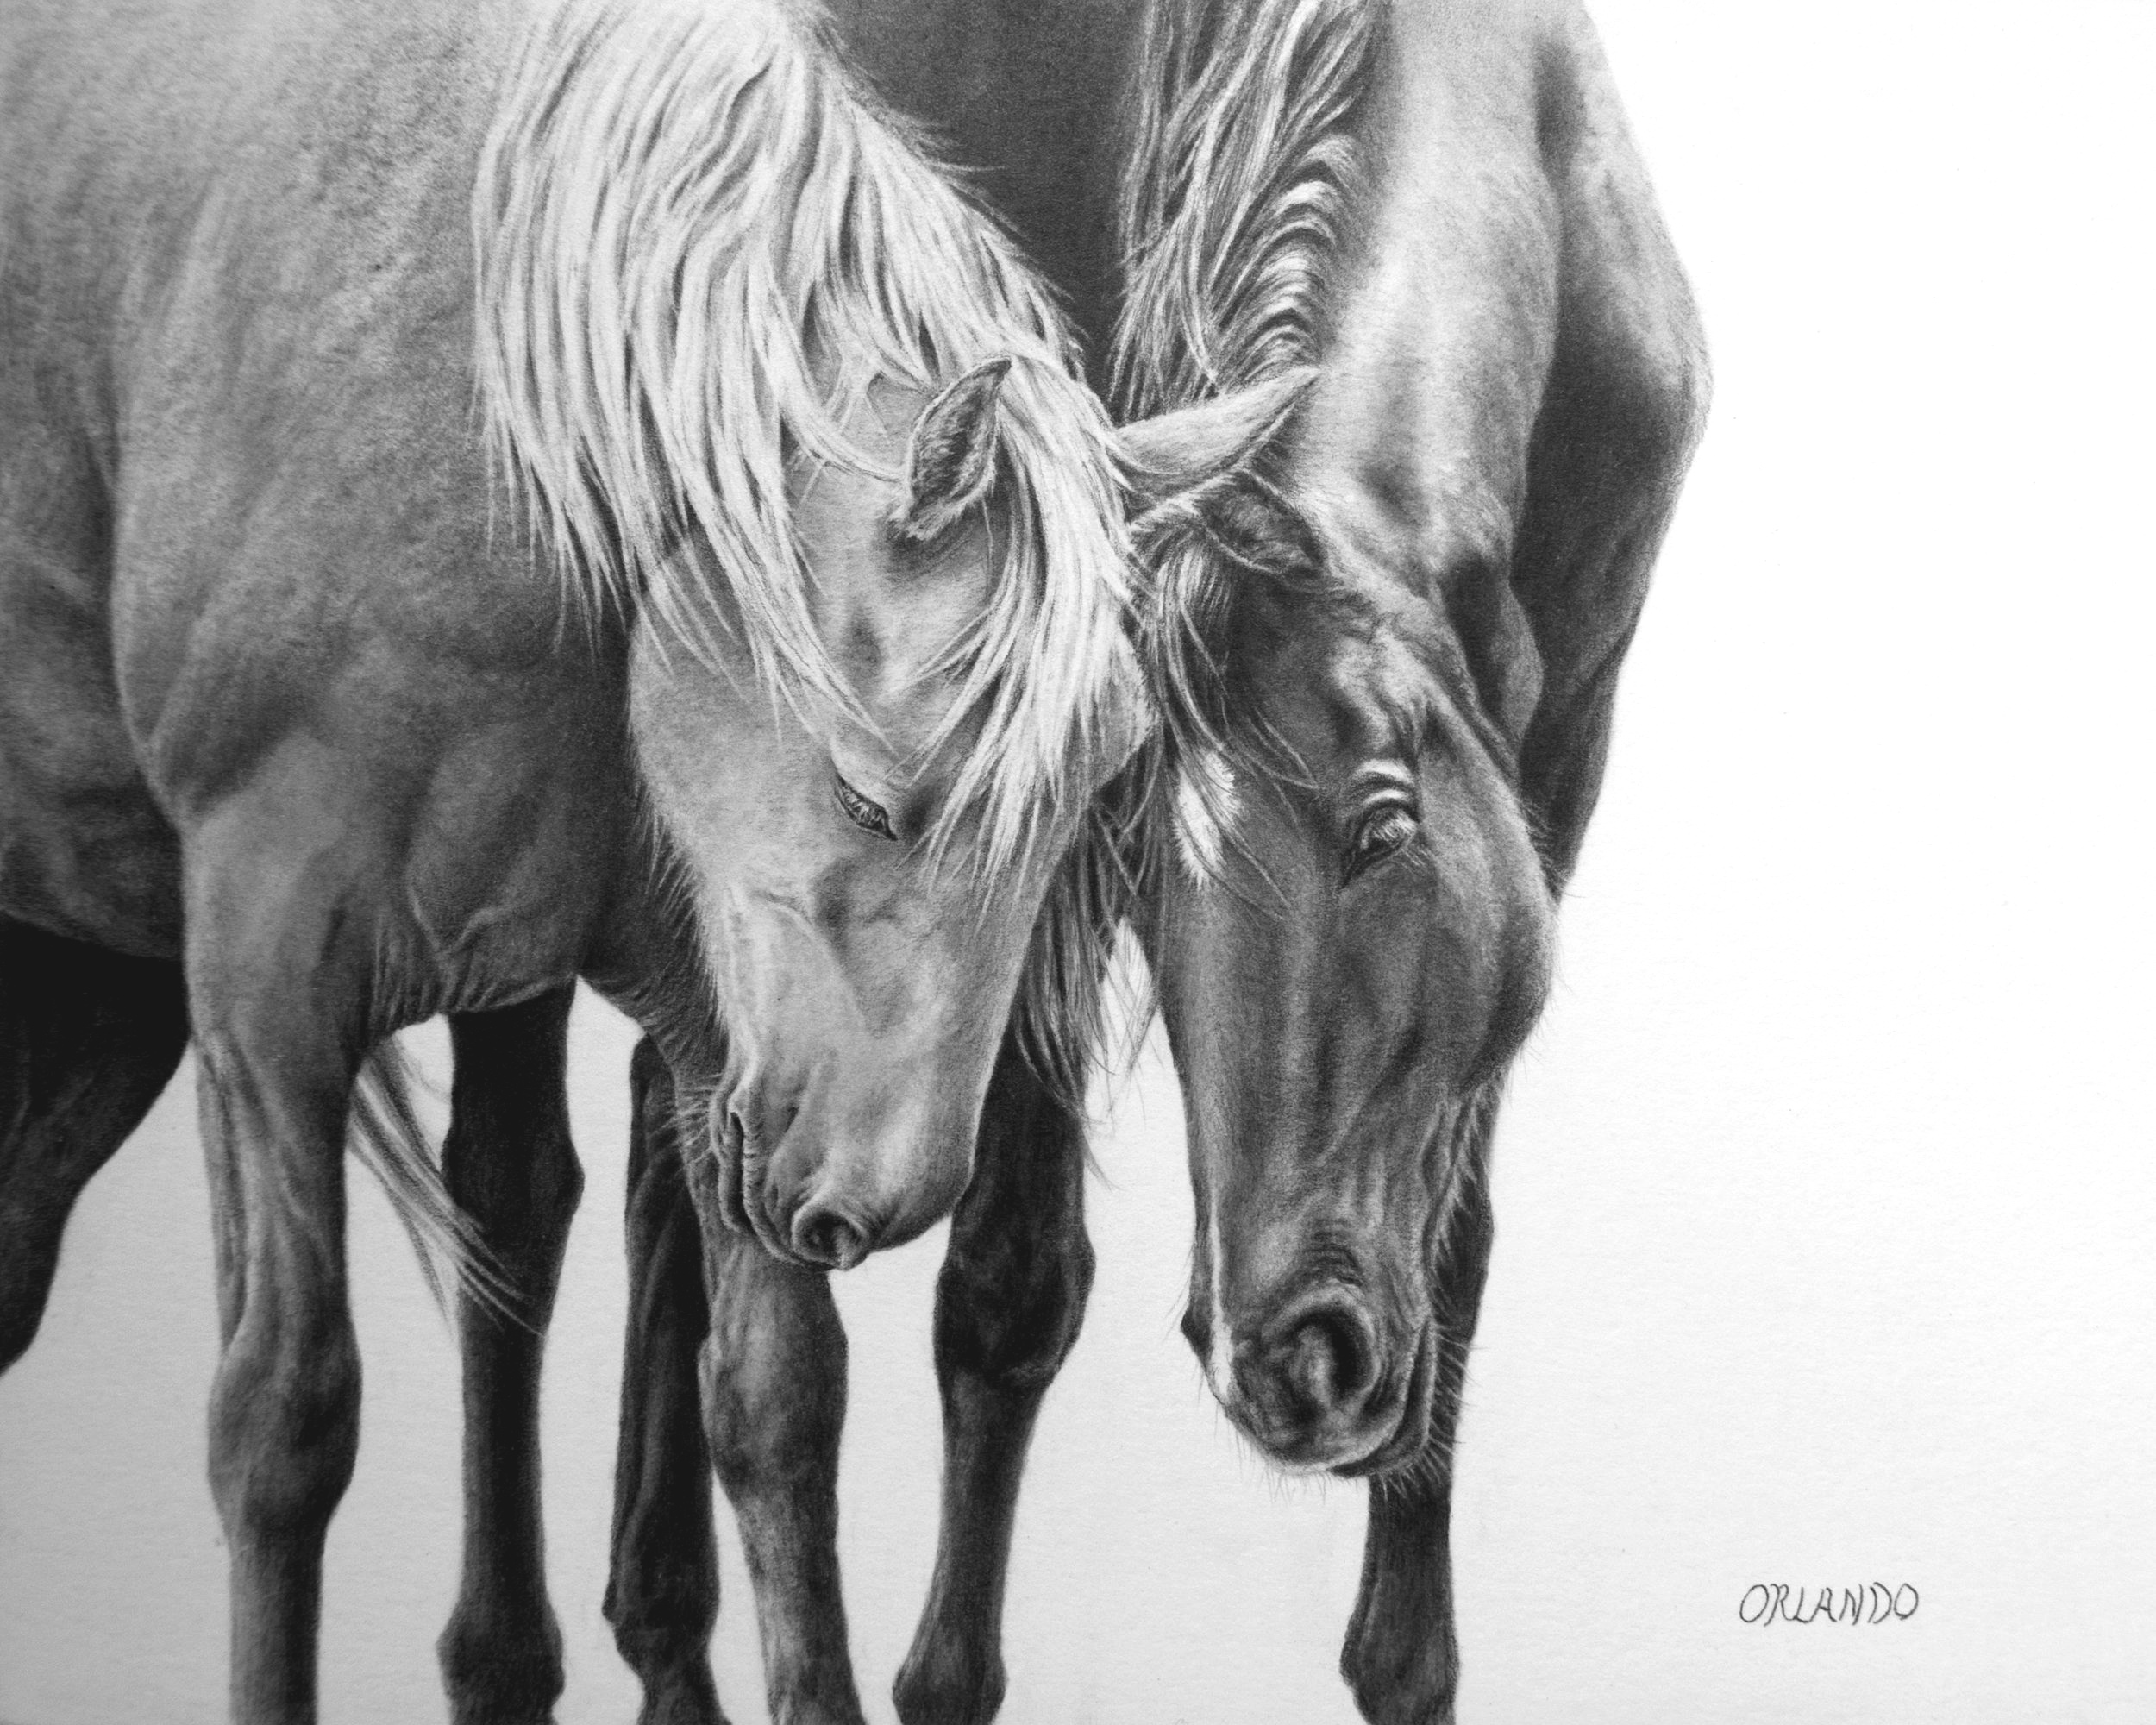 Crystal Orlando #BestFriends #horse #pencildrawing #texasartist #JHWY #realisticpencildrawing .jpg